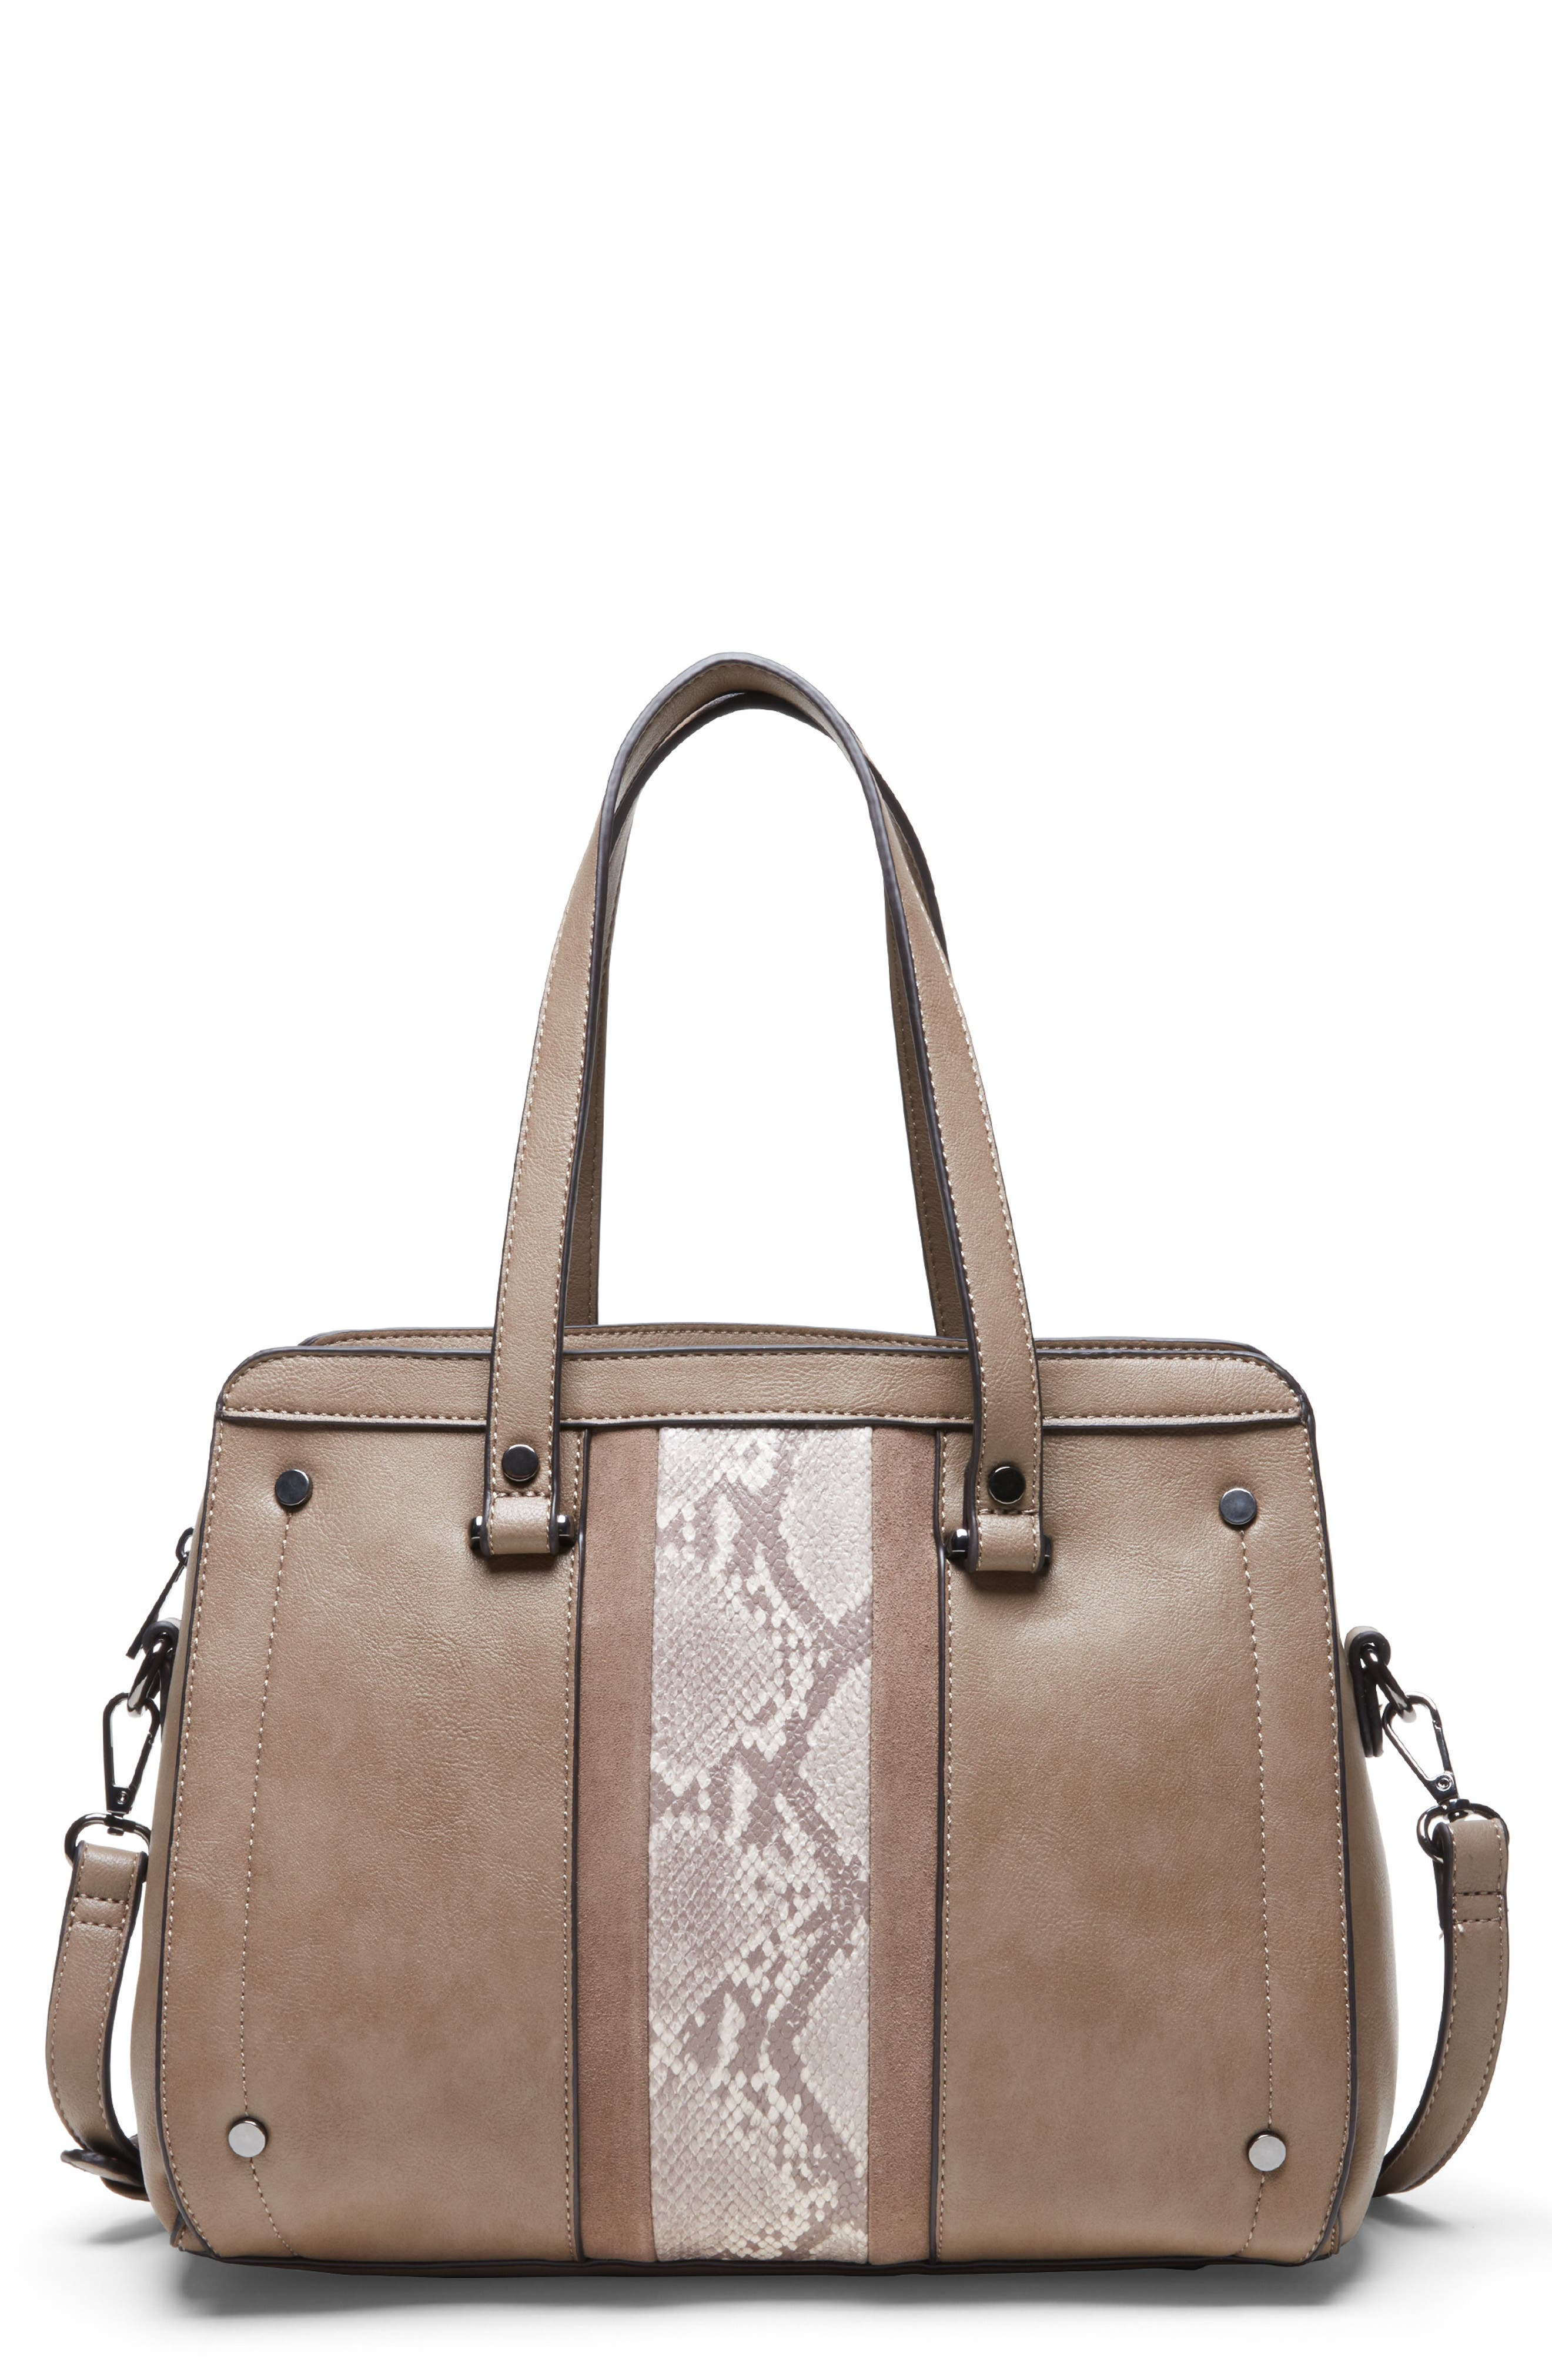 SOLE SOCIETY, Ragna Satchel, Main thumbnail 1, color, MUSHROOM COMBO